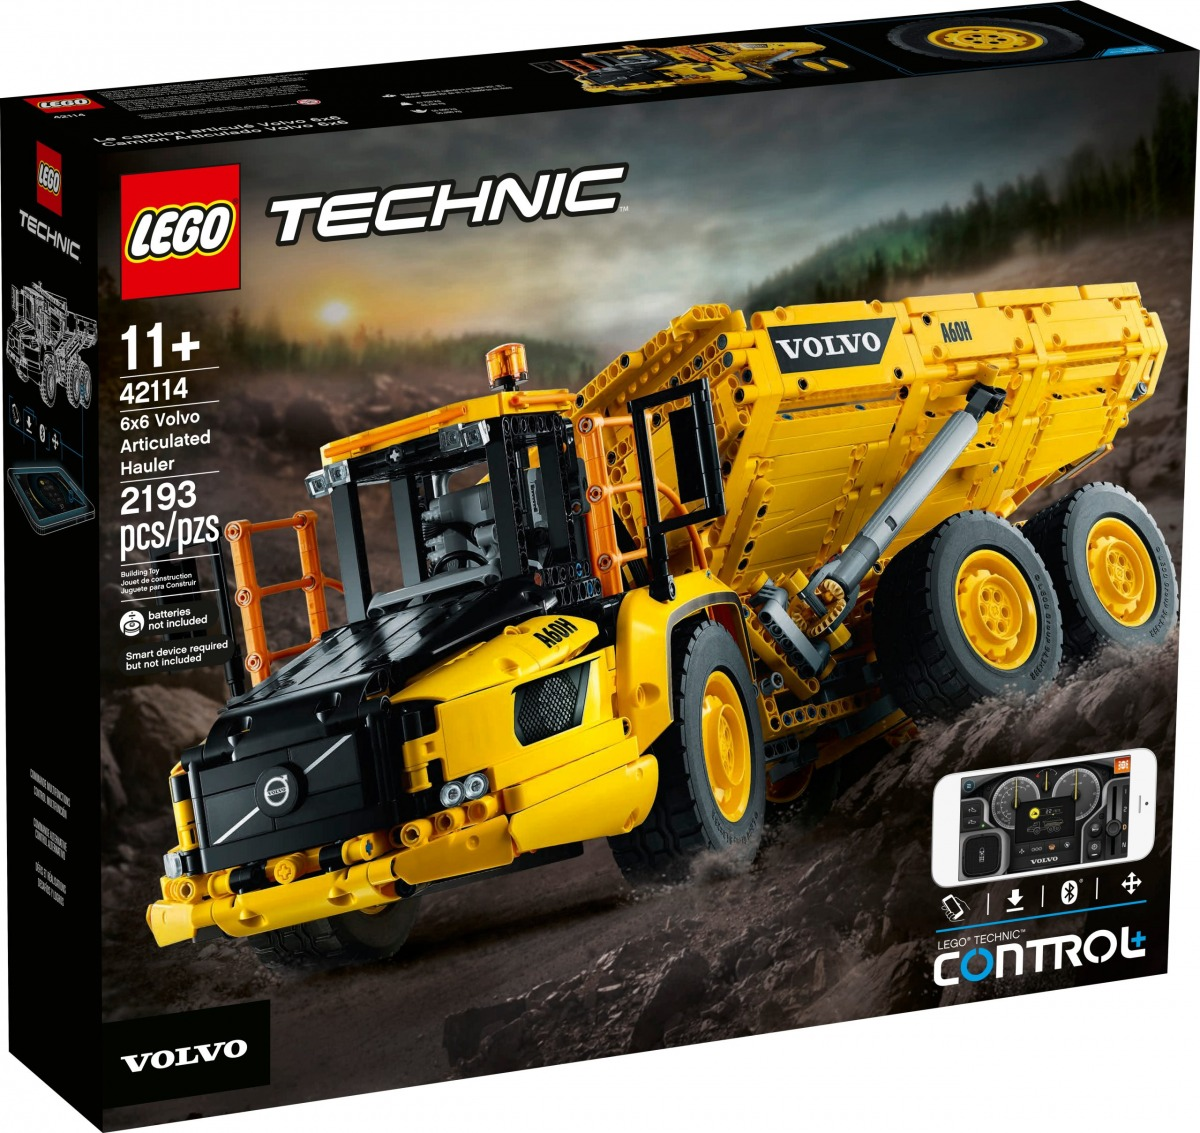 lego 42114 le tombereau articule volvo 6x6 scaled